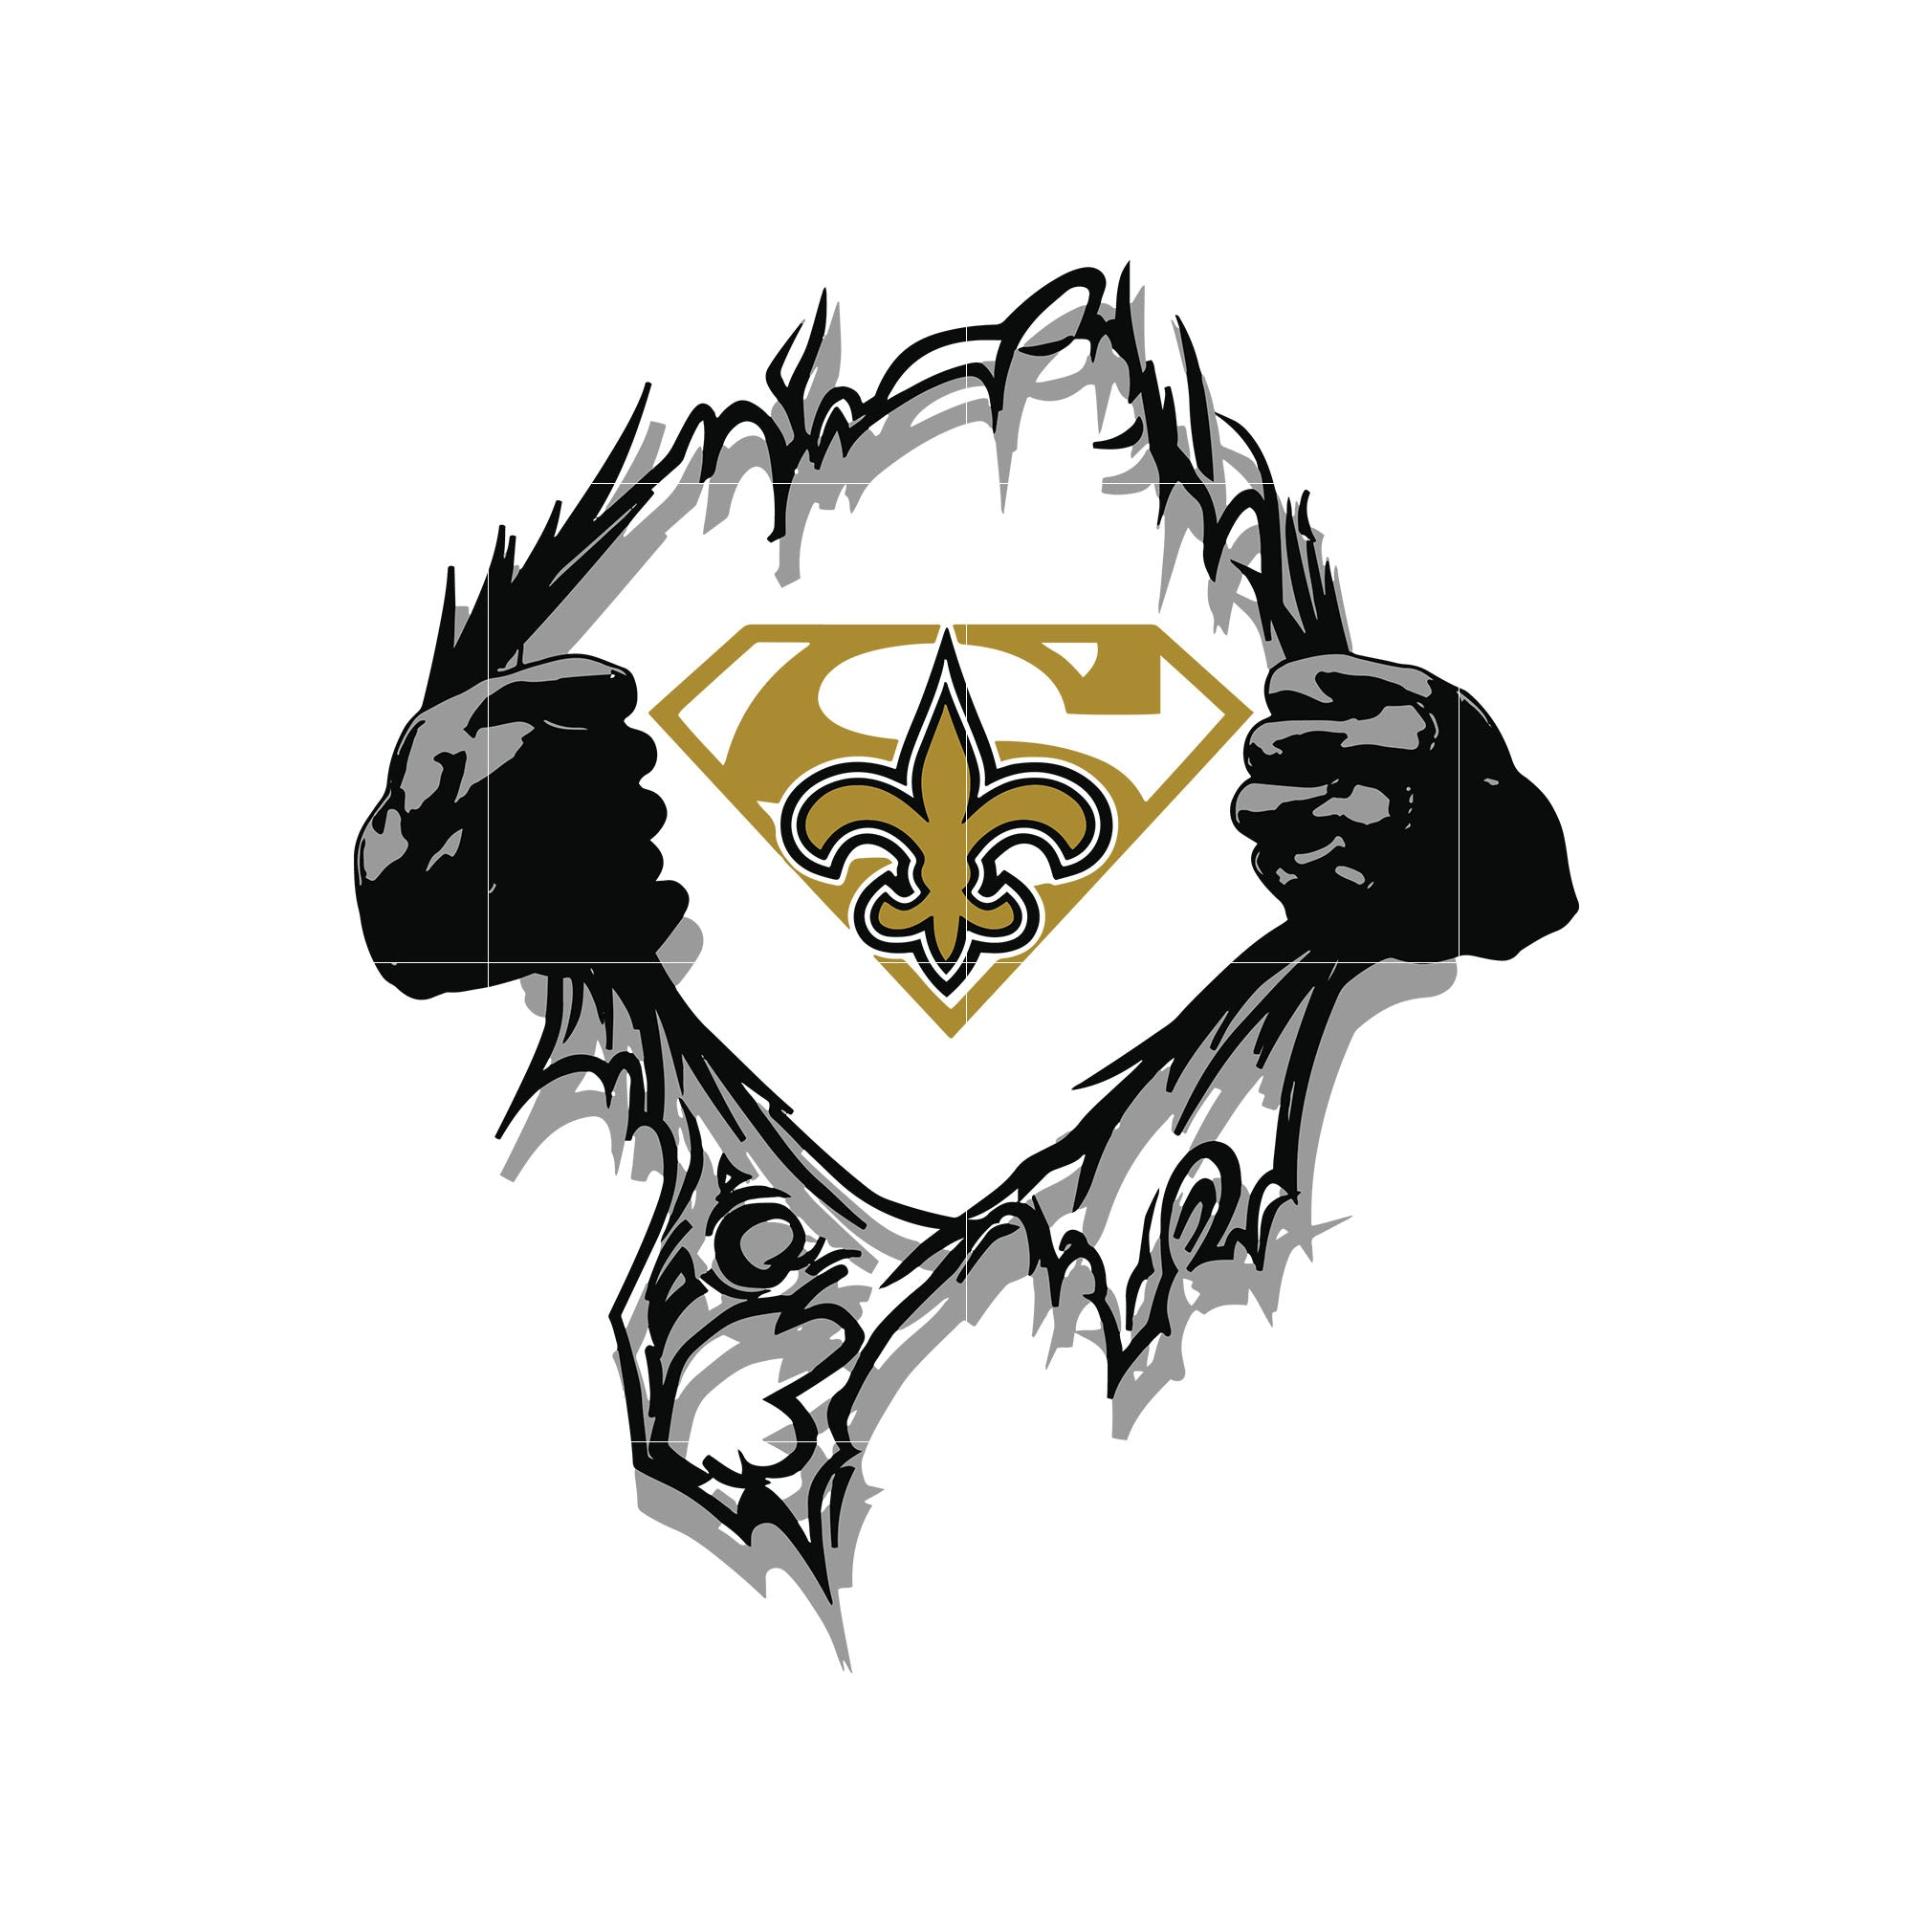 Saints super logo svg, new orleans saints svg, svg for cut